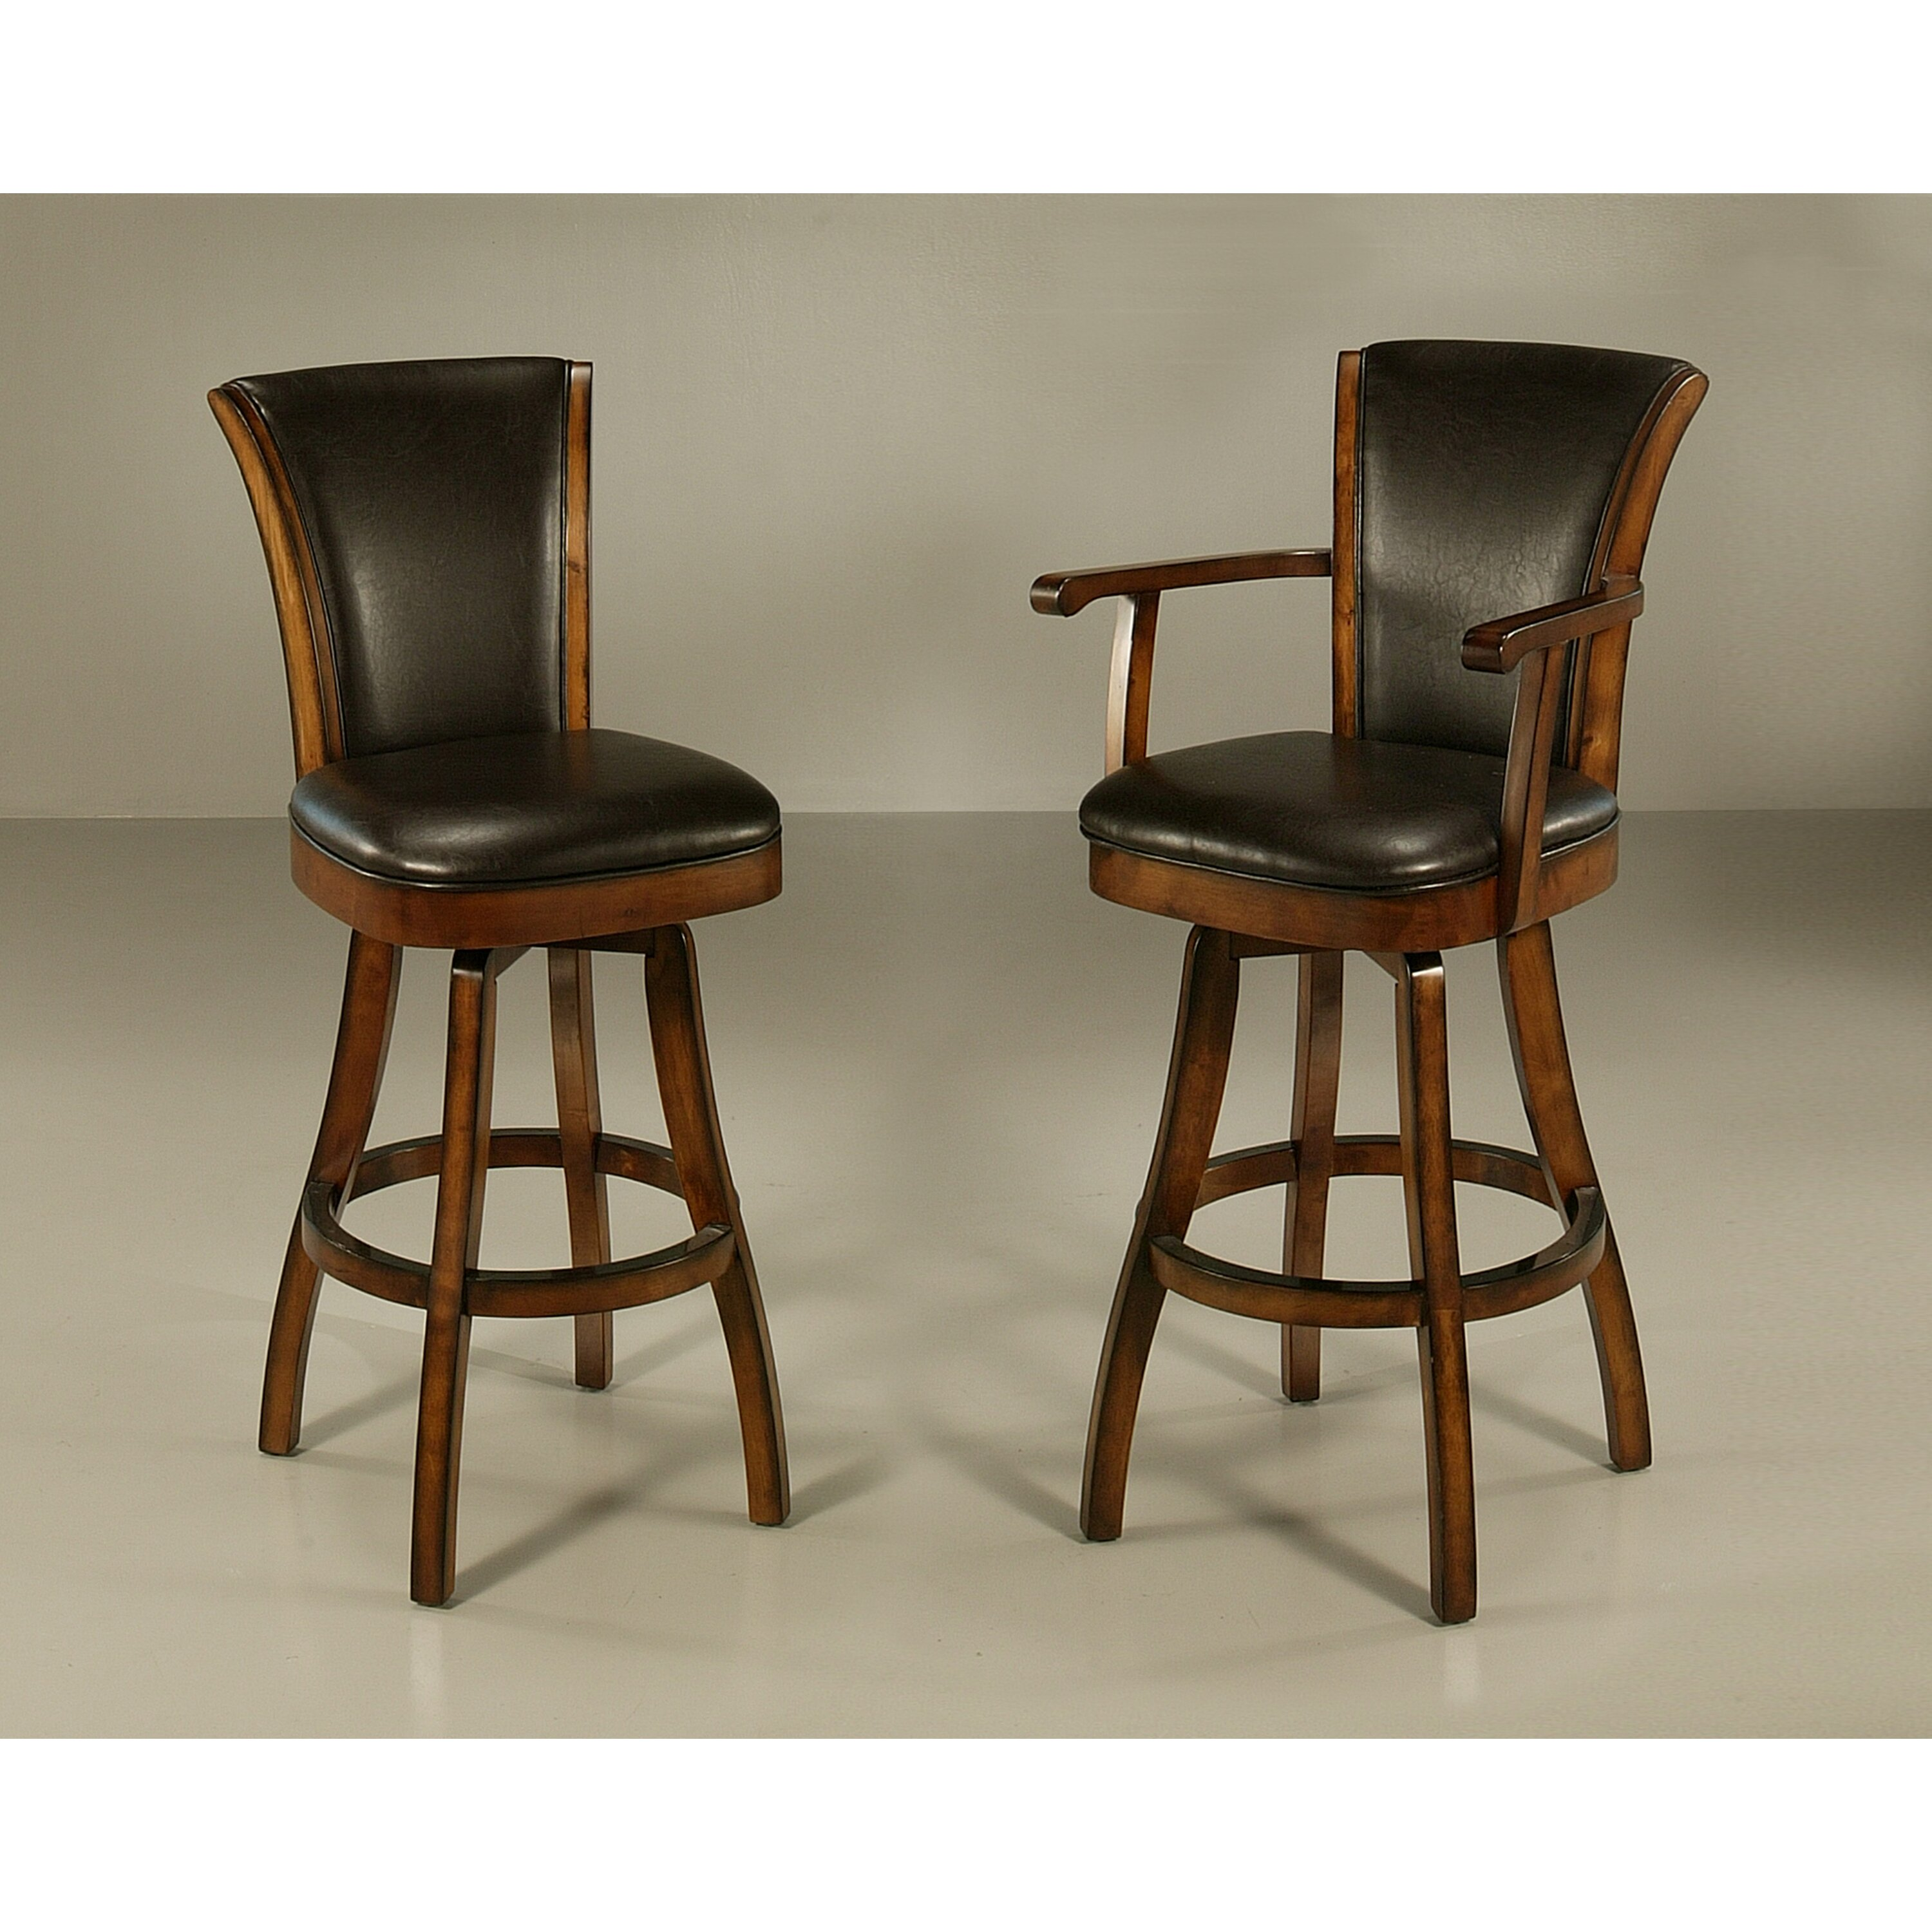 """Kitchen Bar Stools Swivel With Arms: Darby Home Co Glenwood 30"""" Swivel Bar Stool & Reviews"""